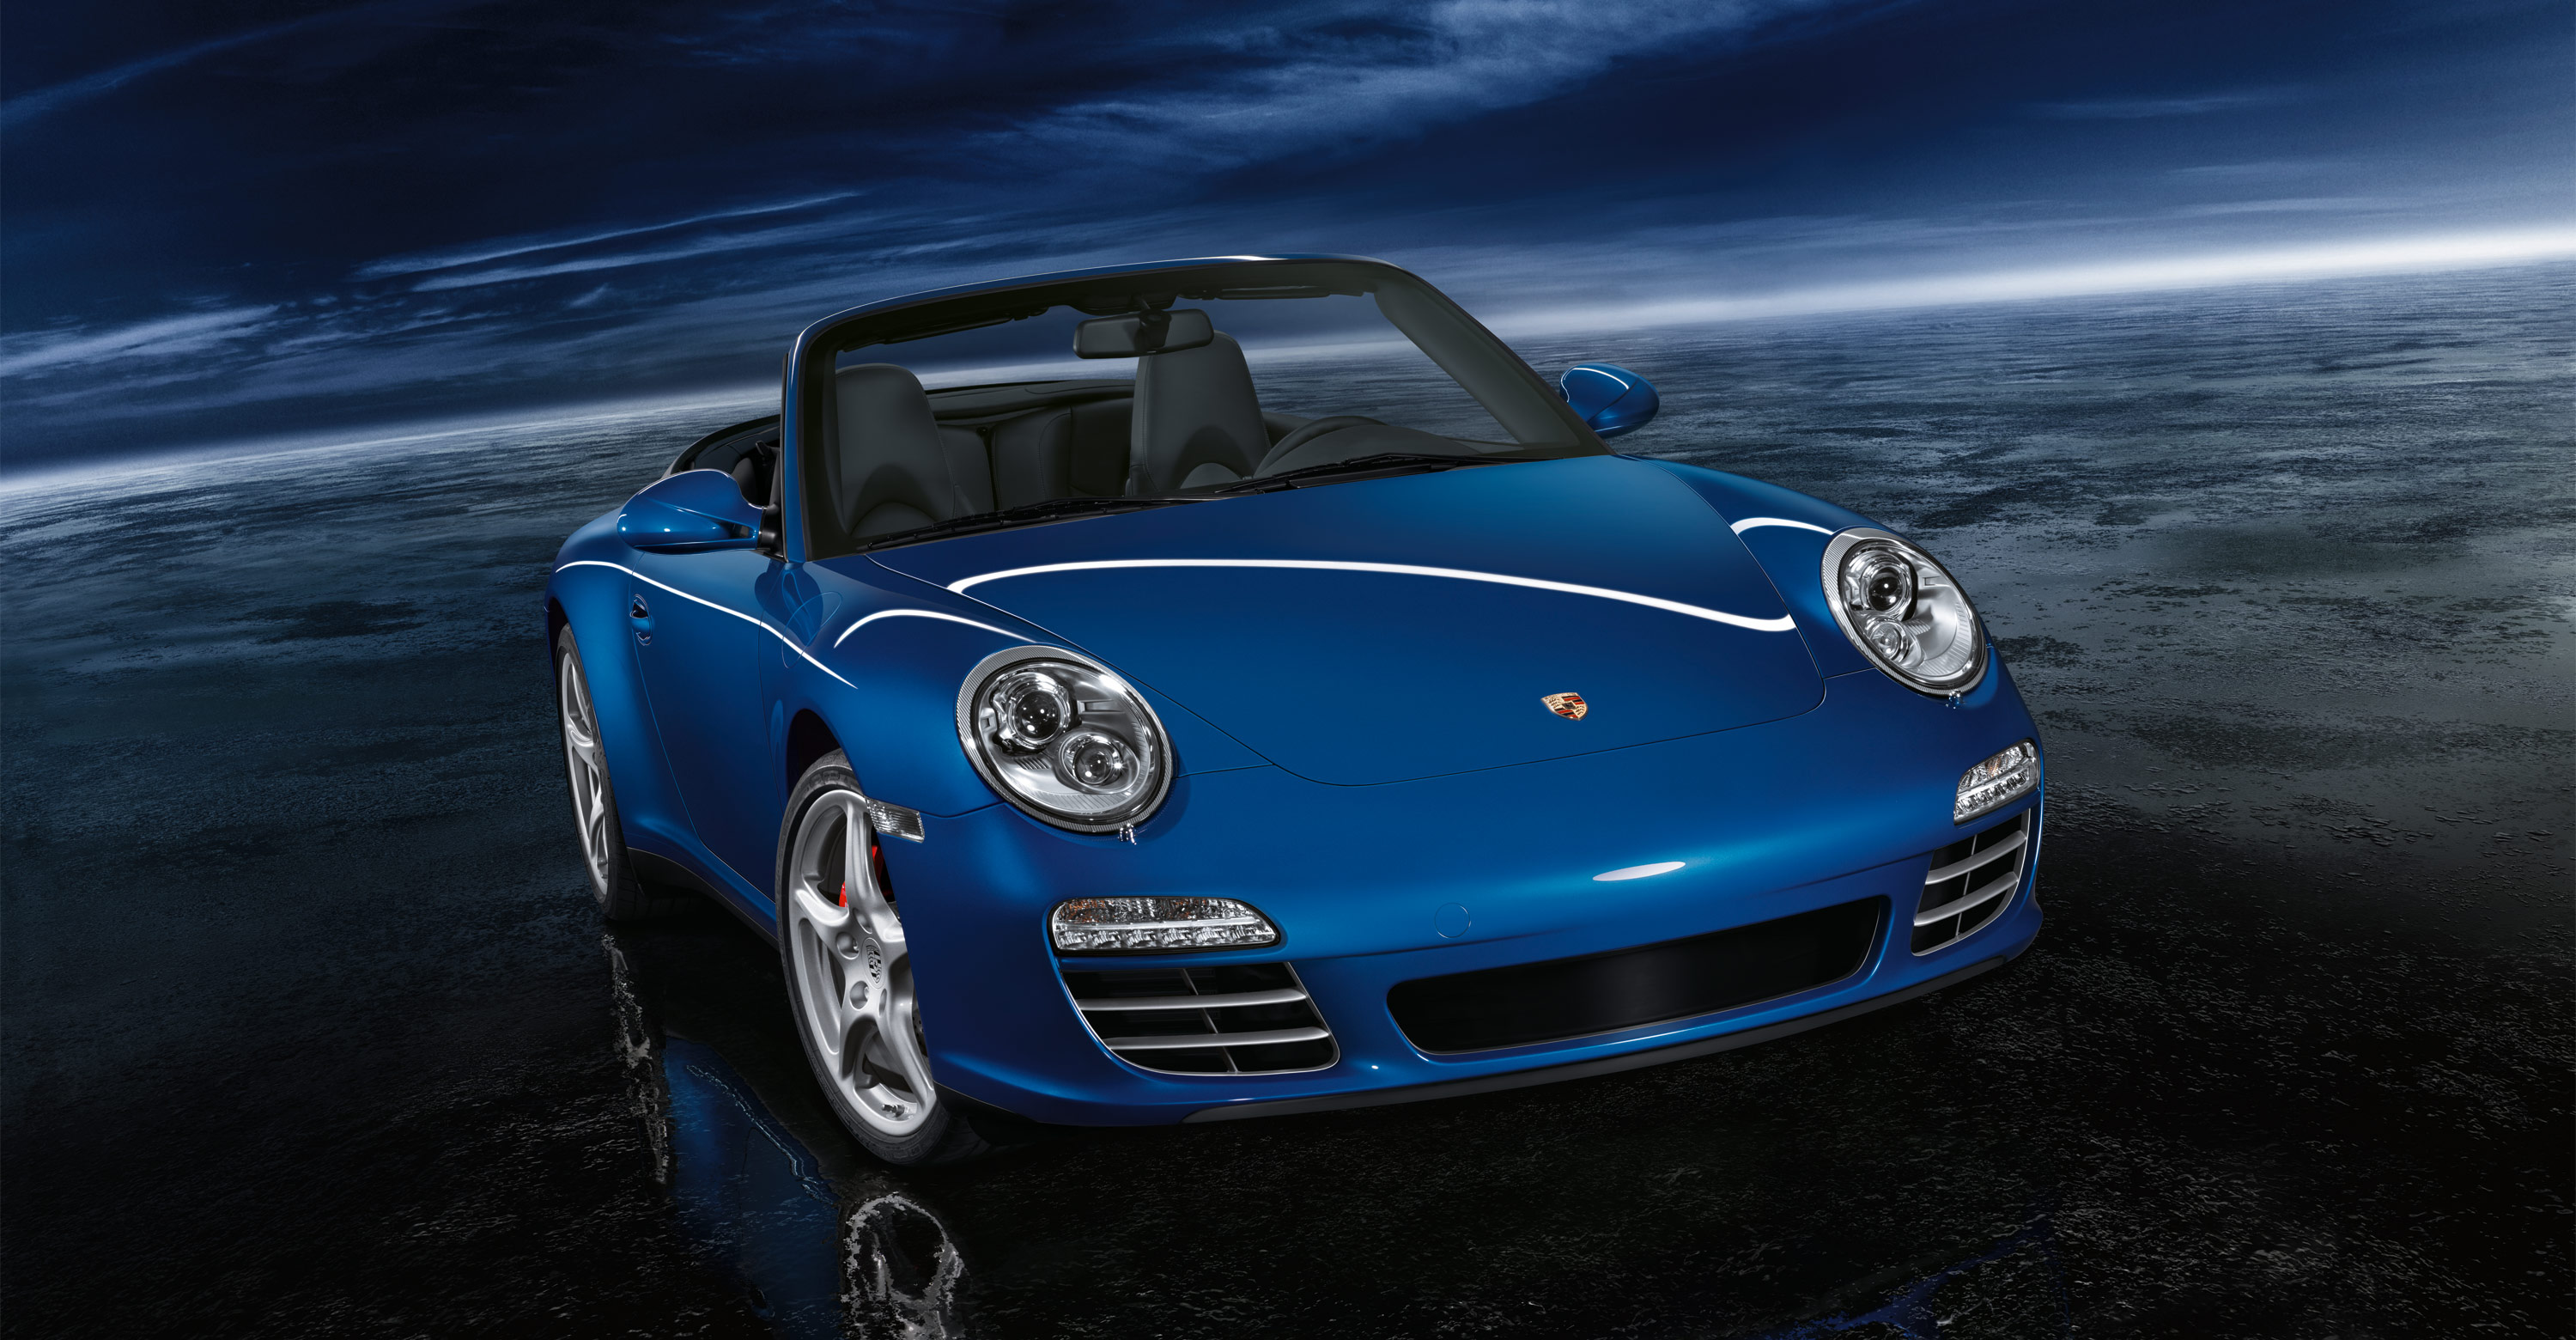 2011 Blue Porsche 911 Carrera 4s Cabriolet Wallpapers